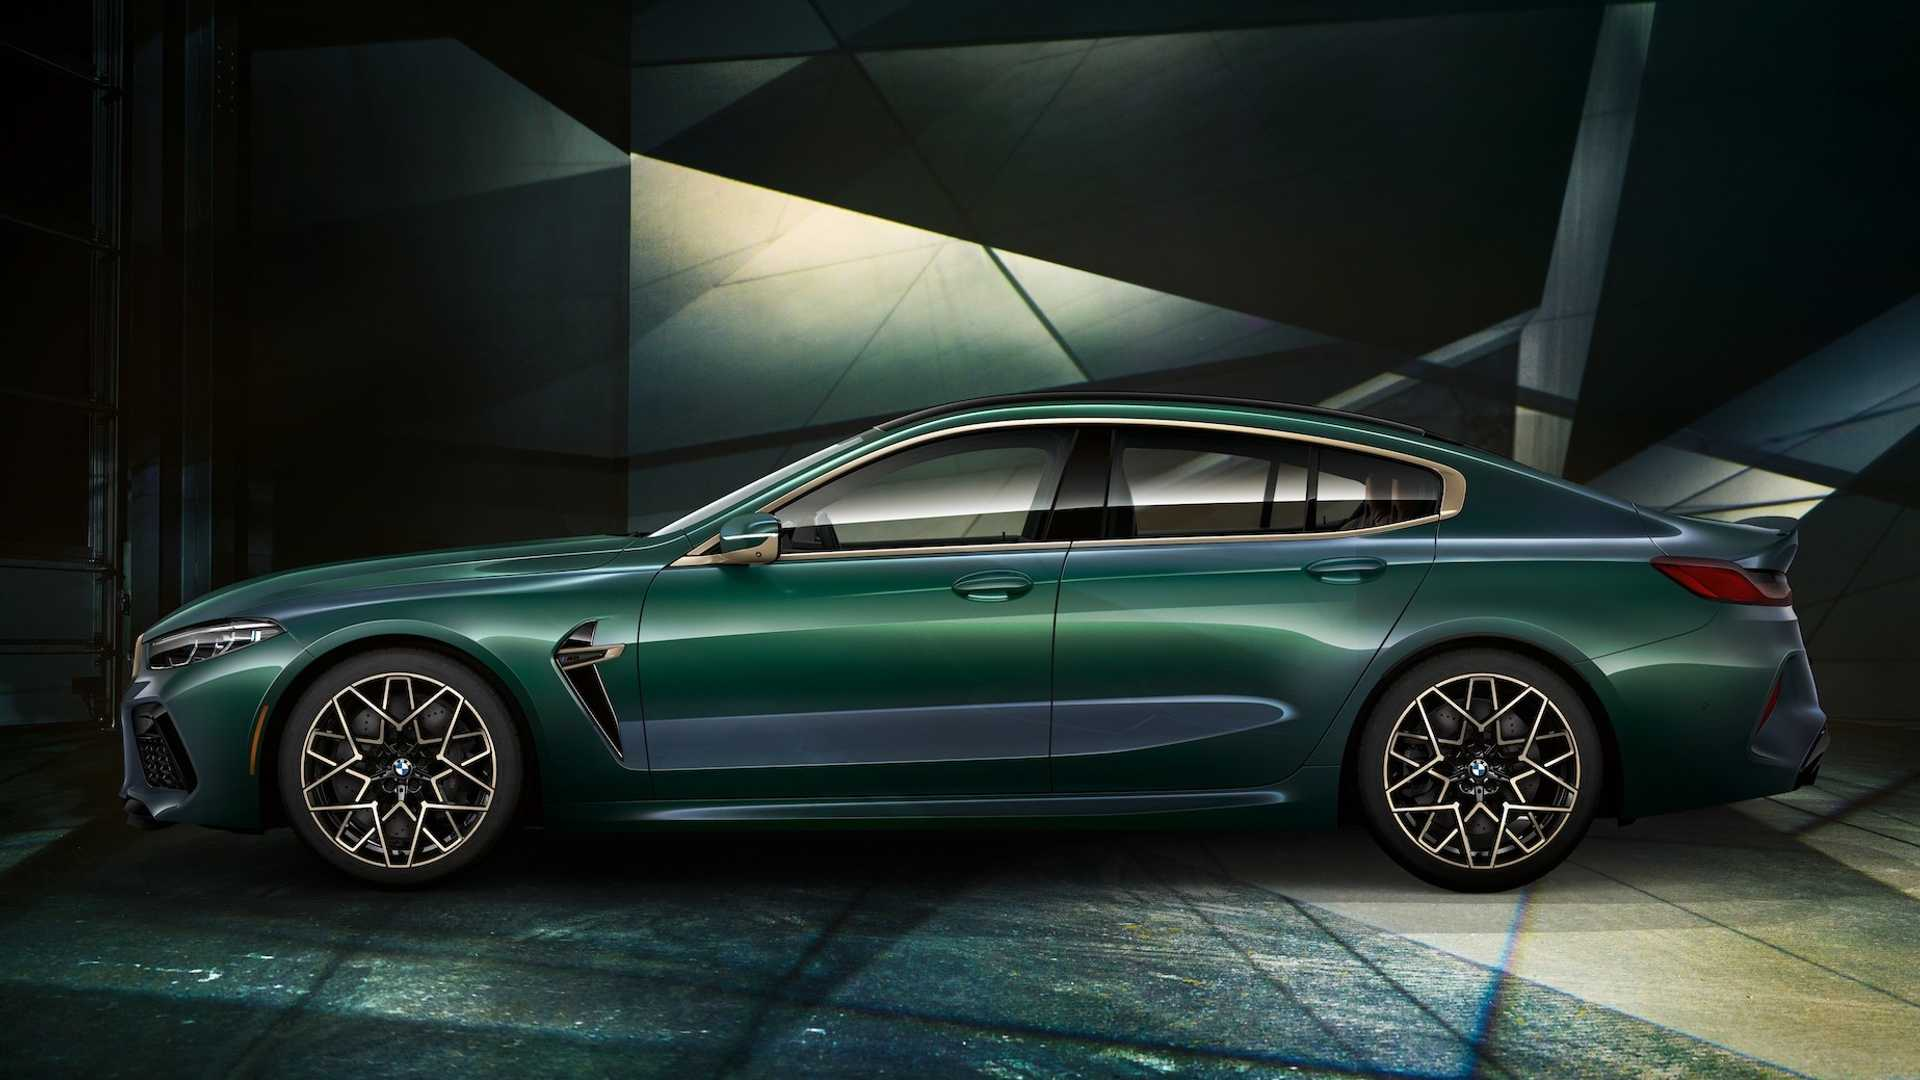 2020-bmw-m8-gran-coupe-competition-3